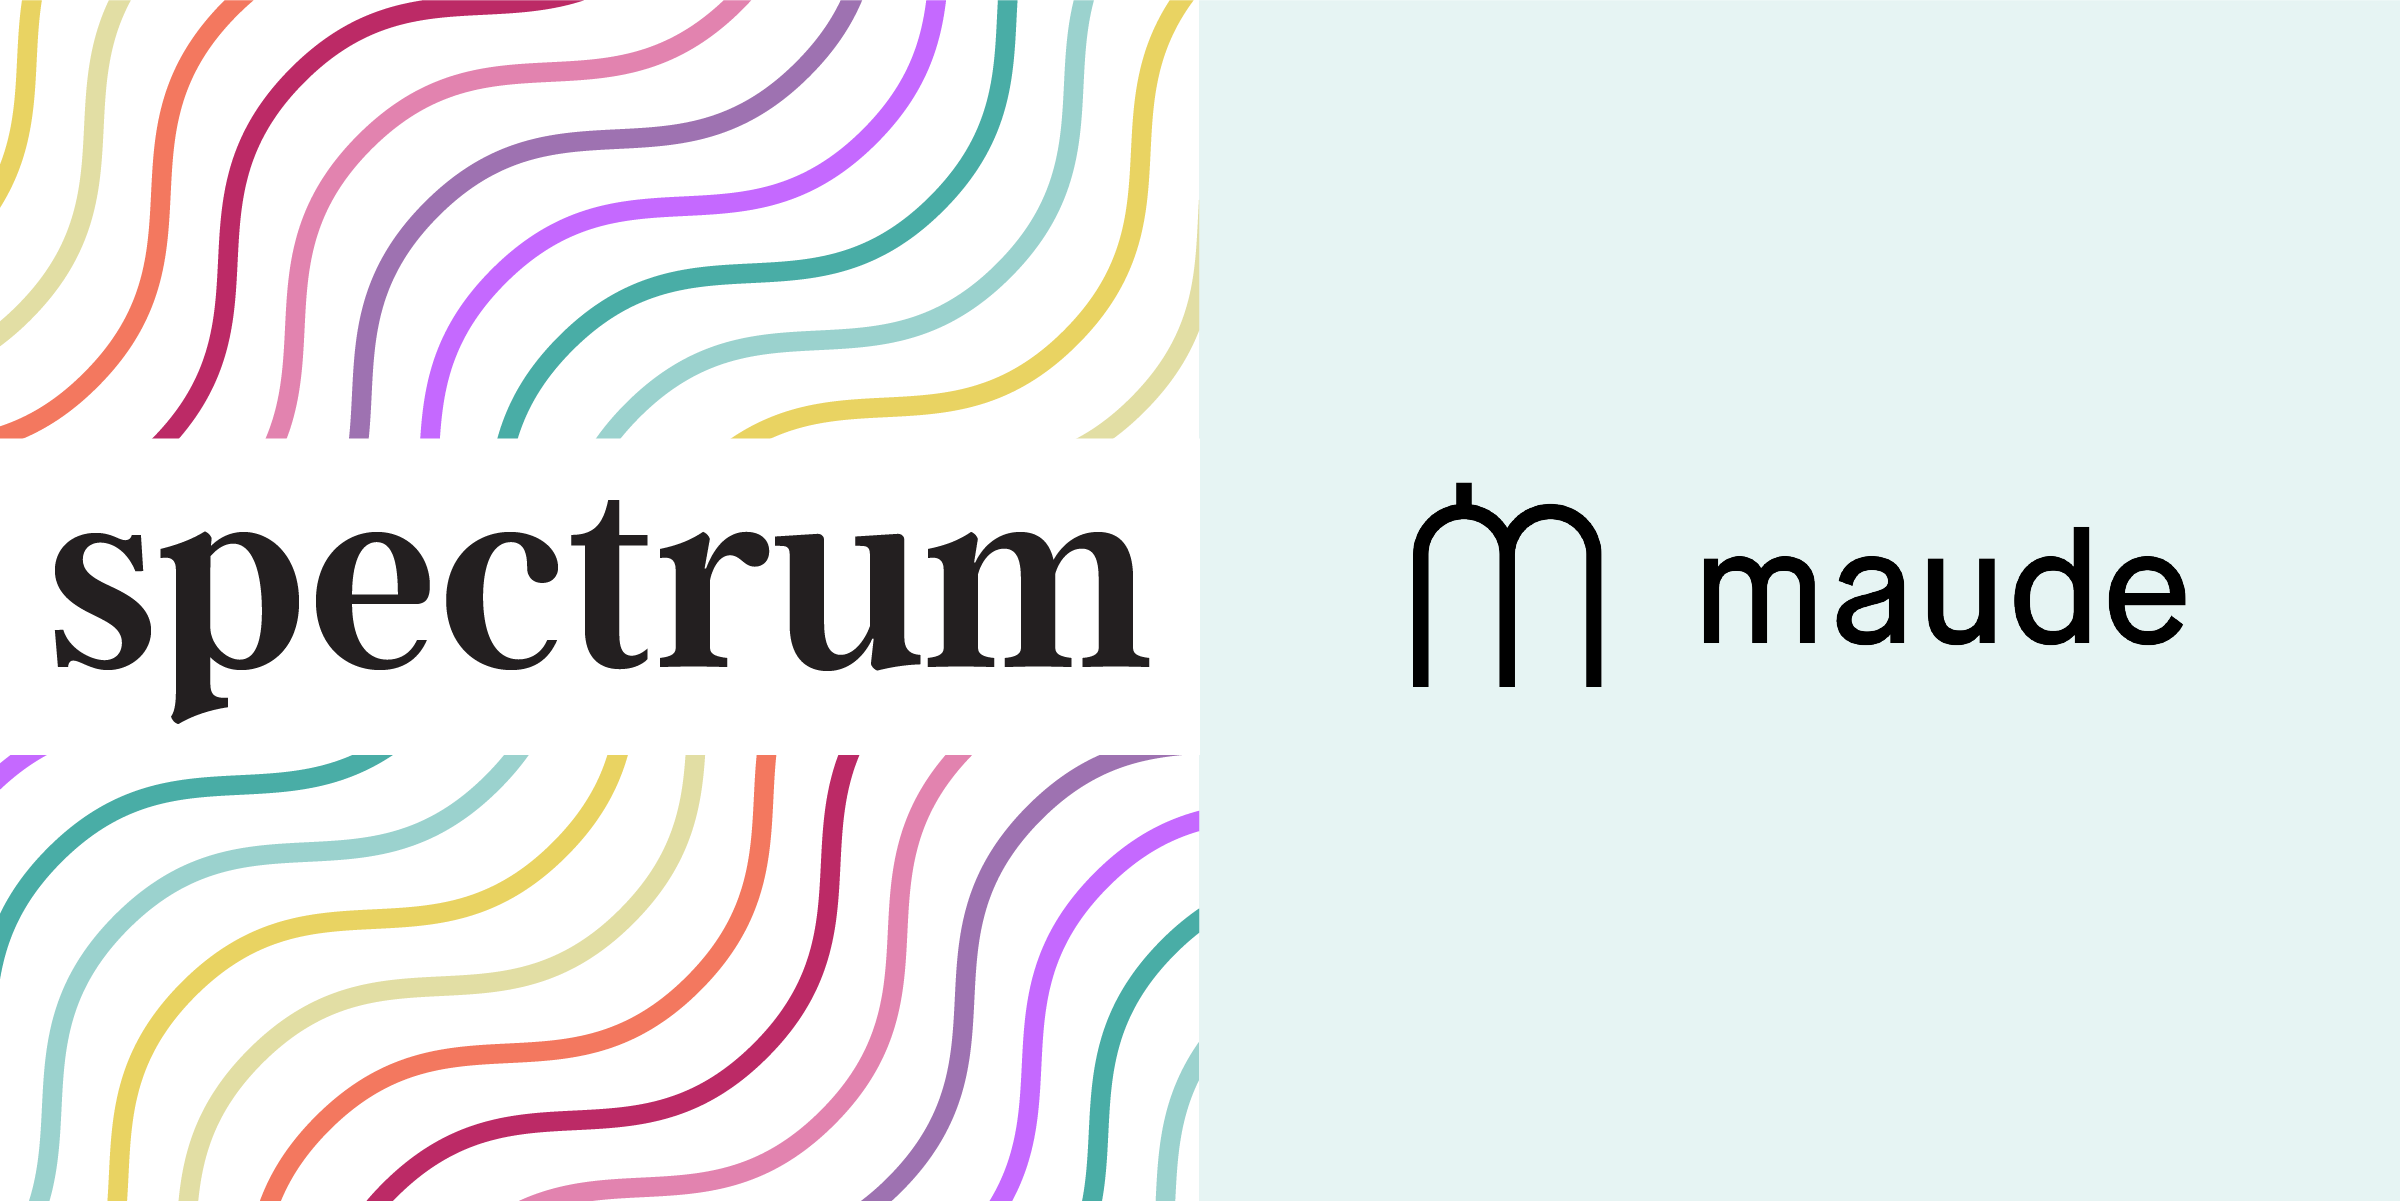 Faraday Spectrum interview series with maude